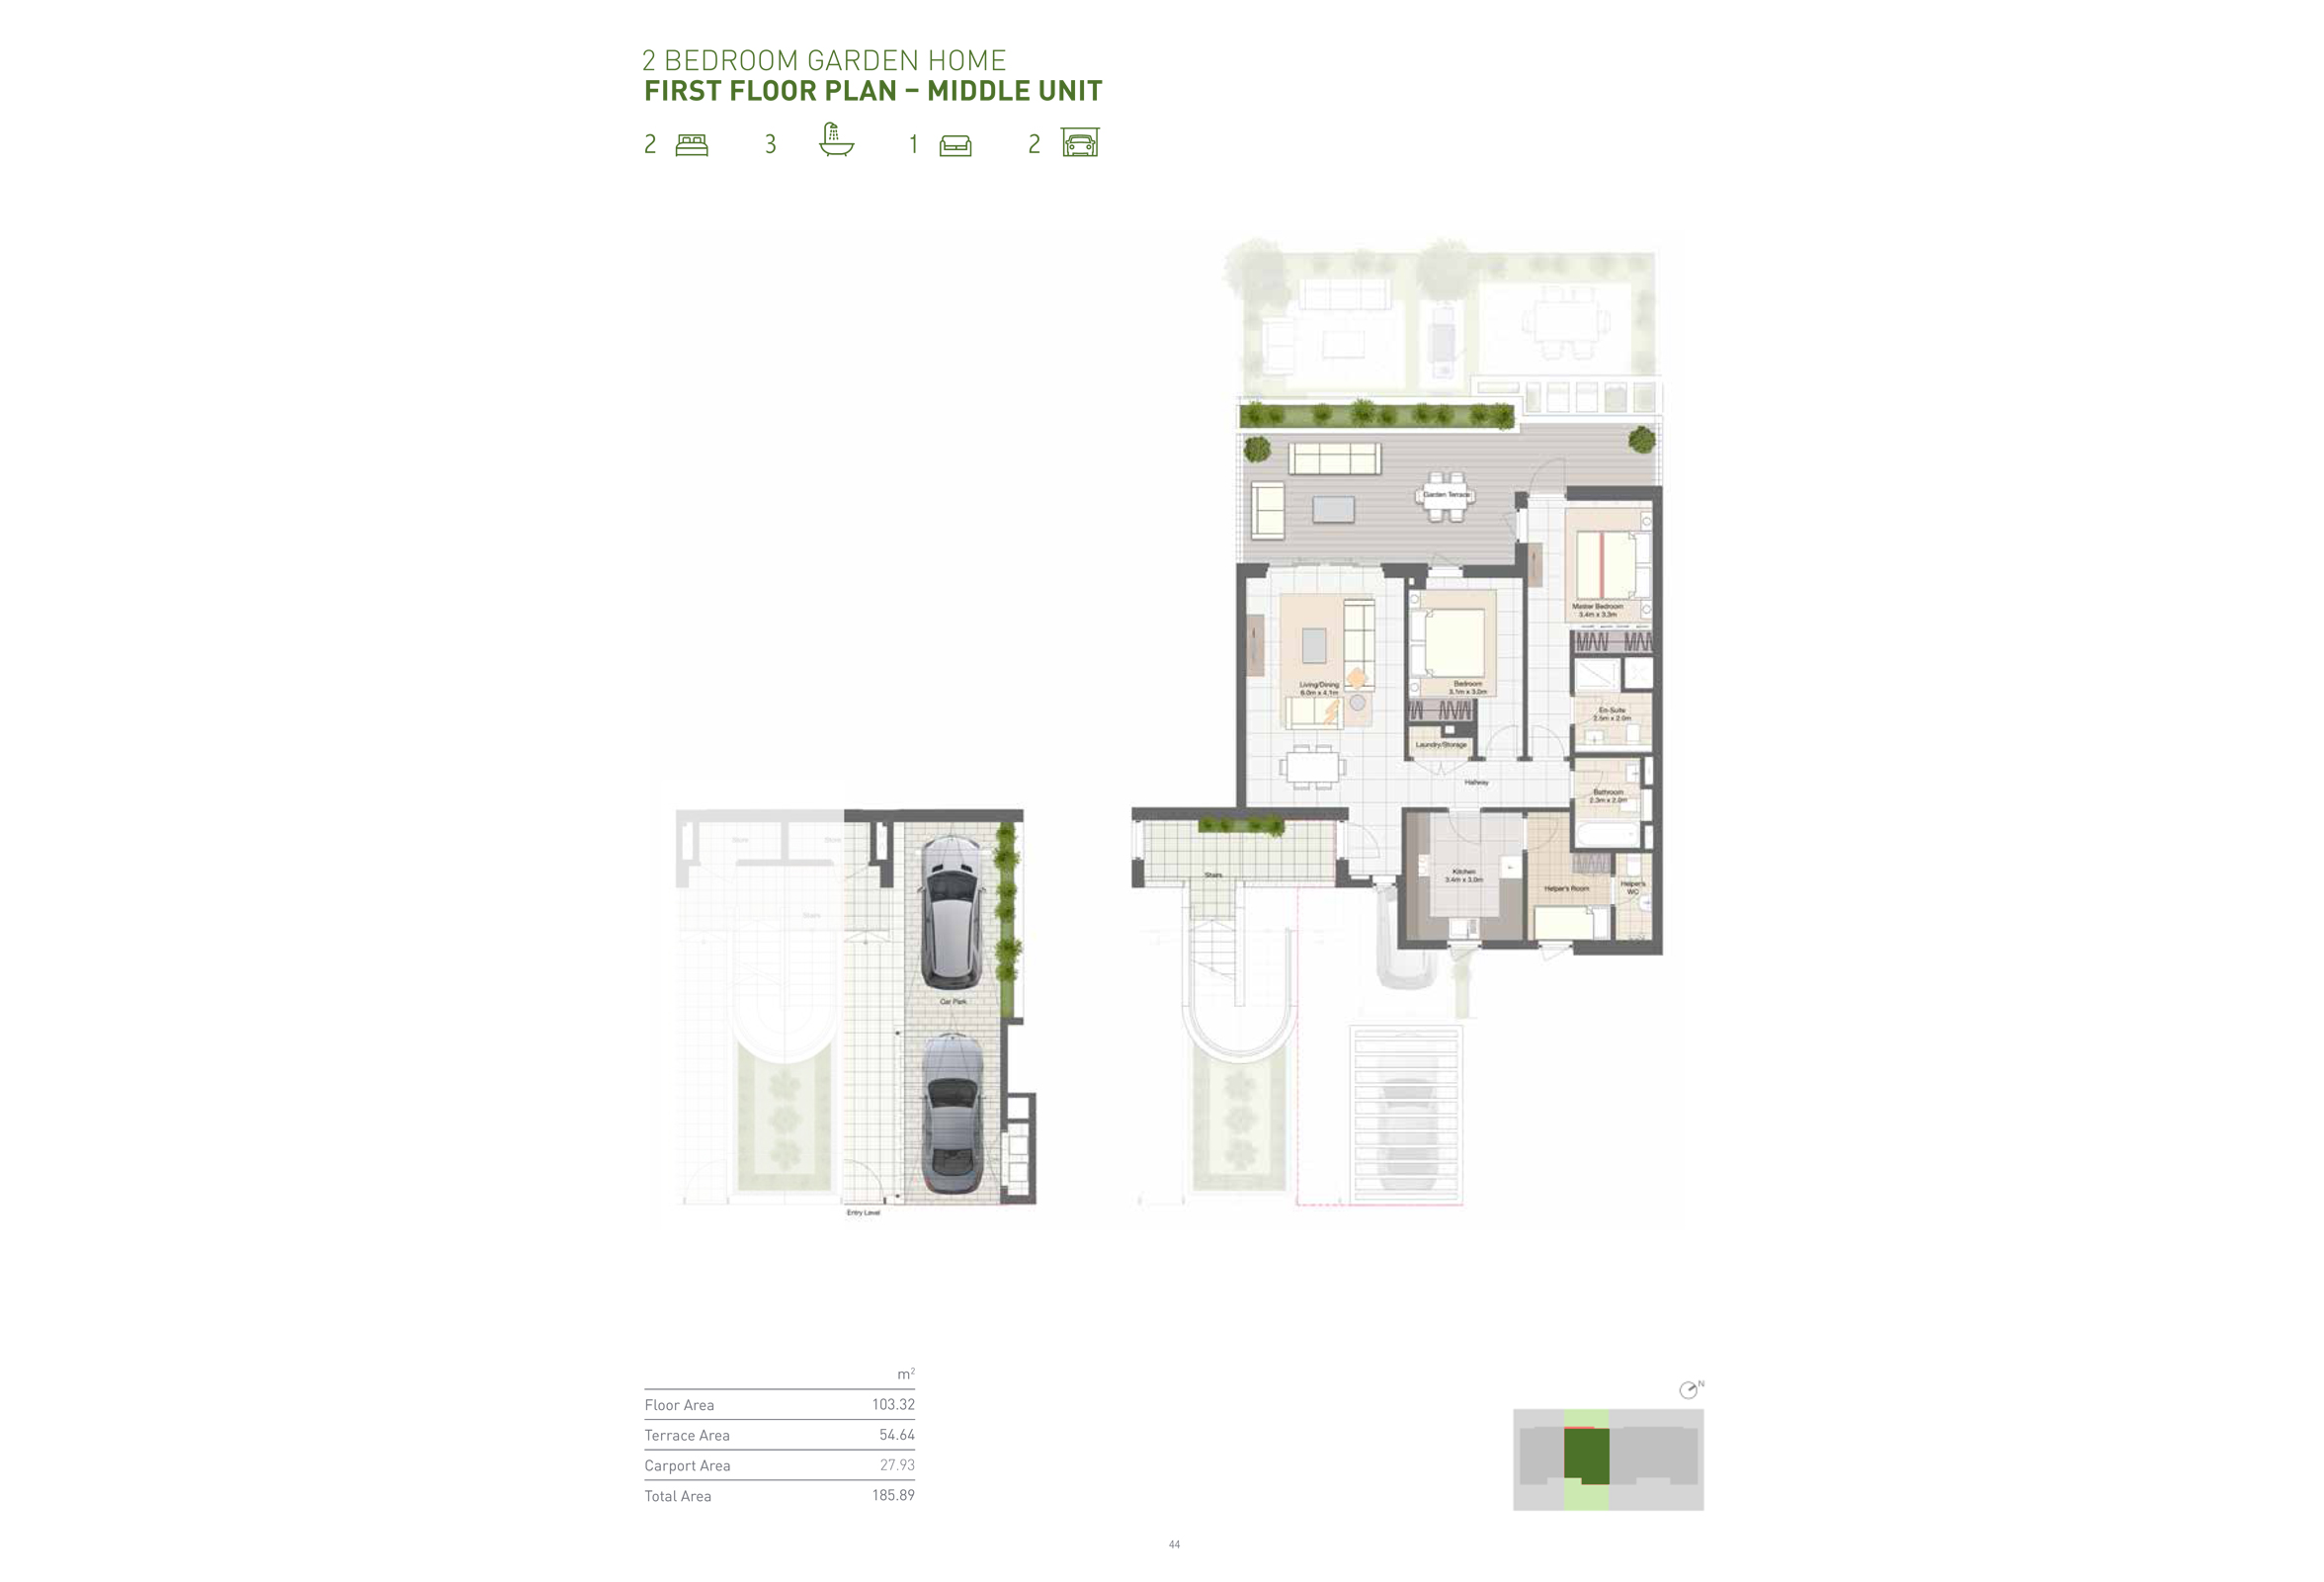 2 Bedroom Garden Home - First Floor - Middle Unit Size 185 Sqm